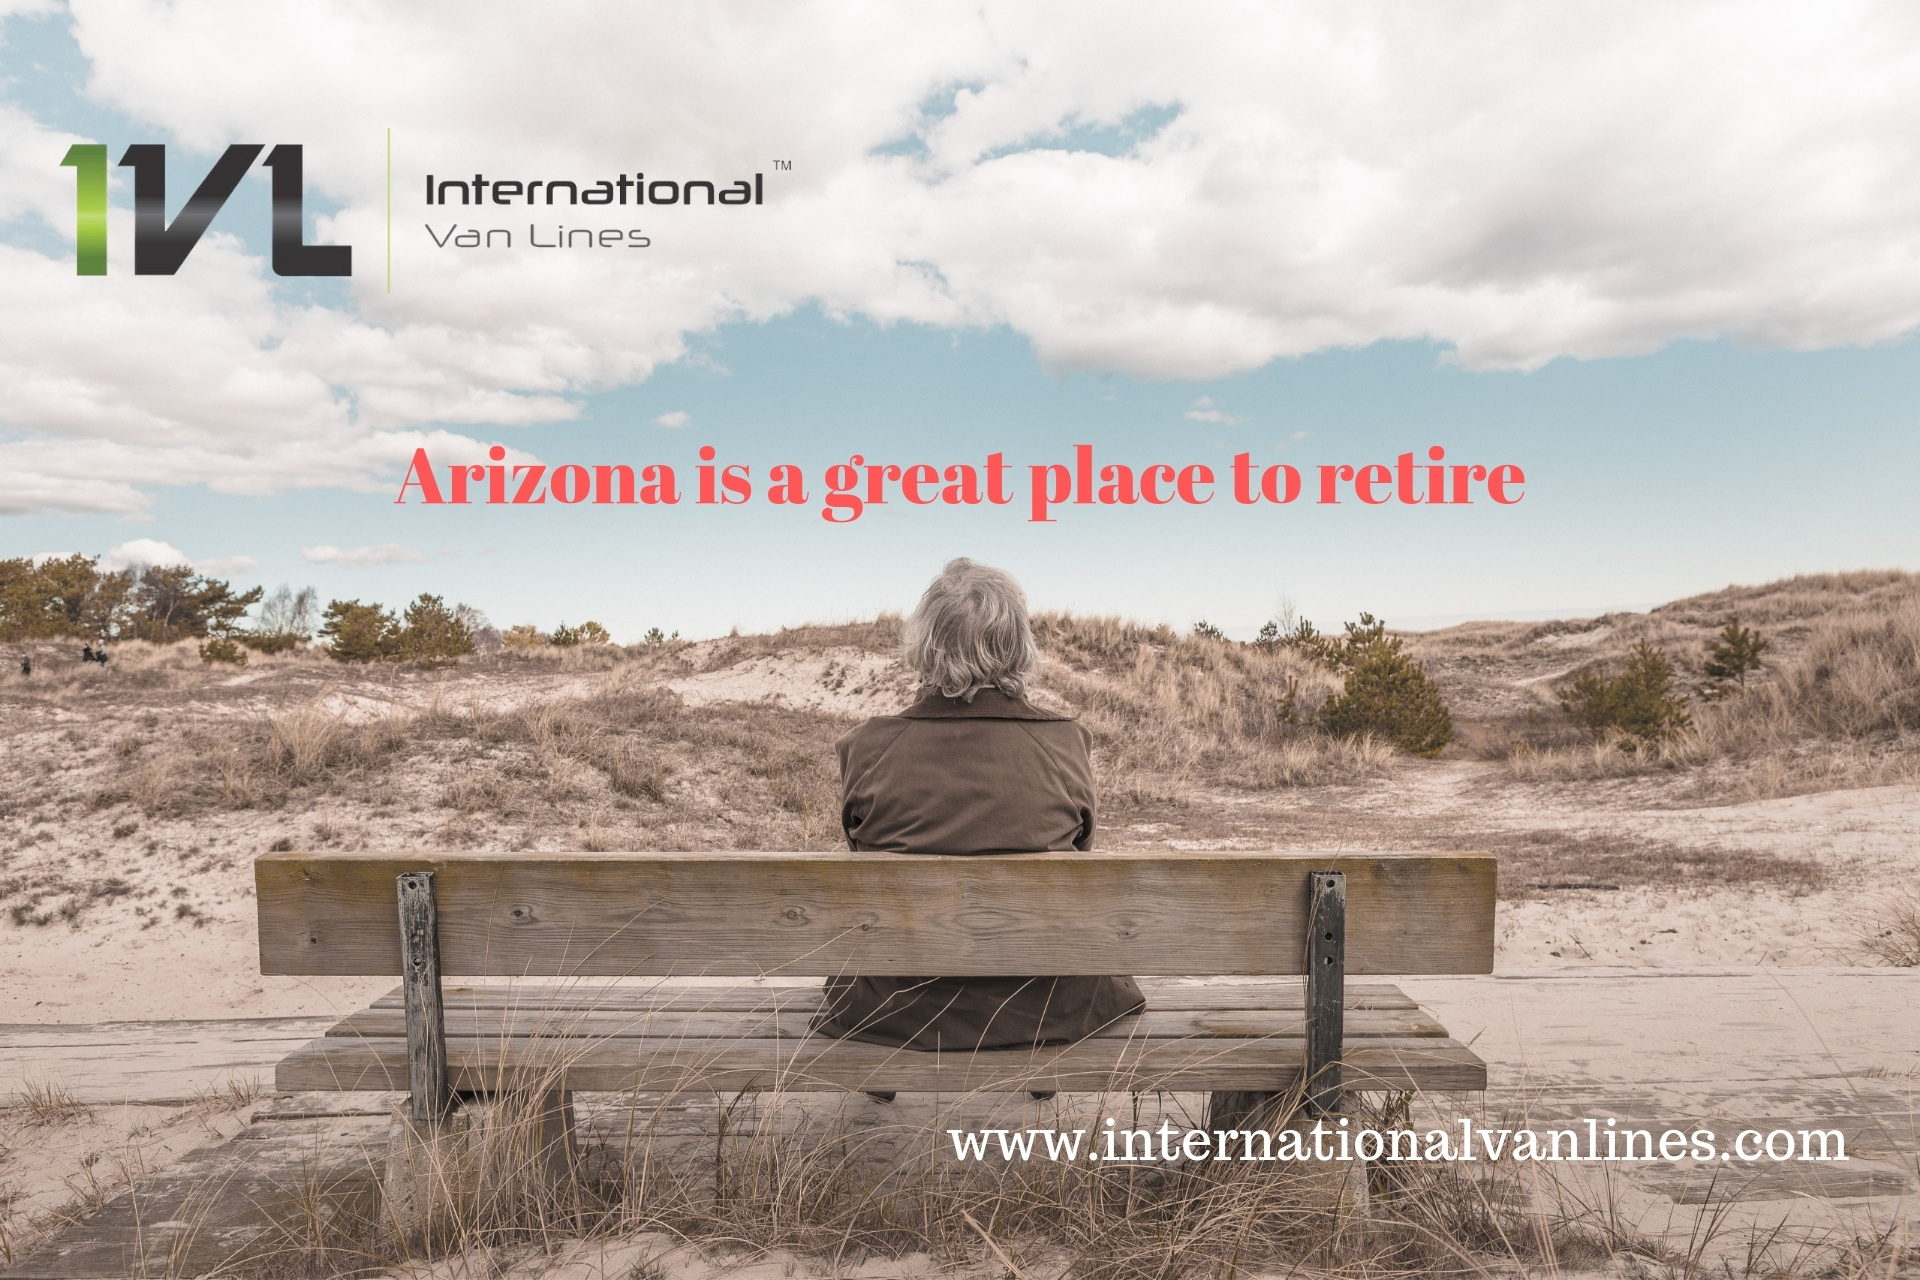 Arizona is a great place for retirement